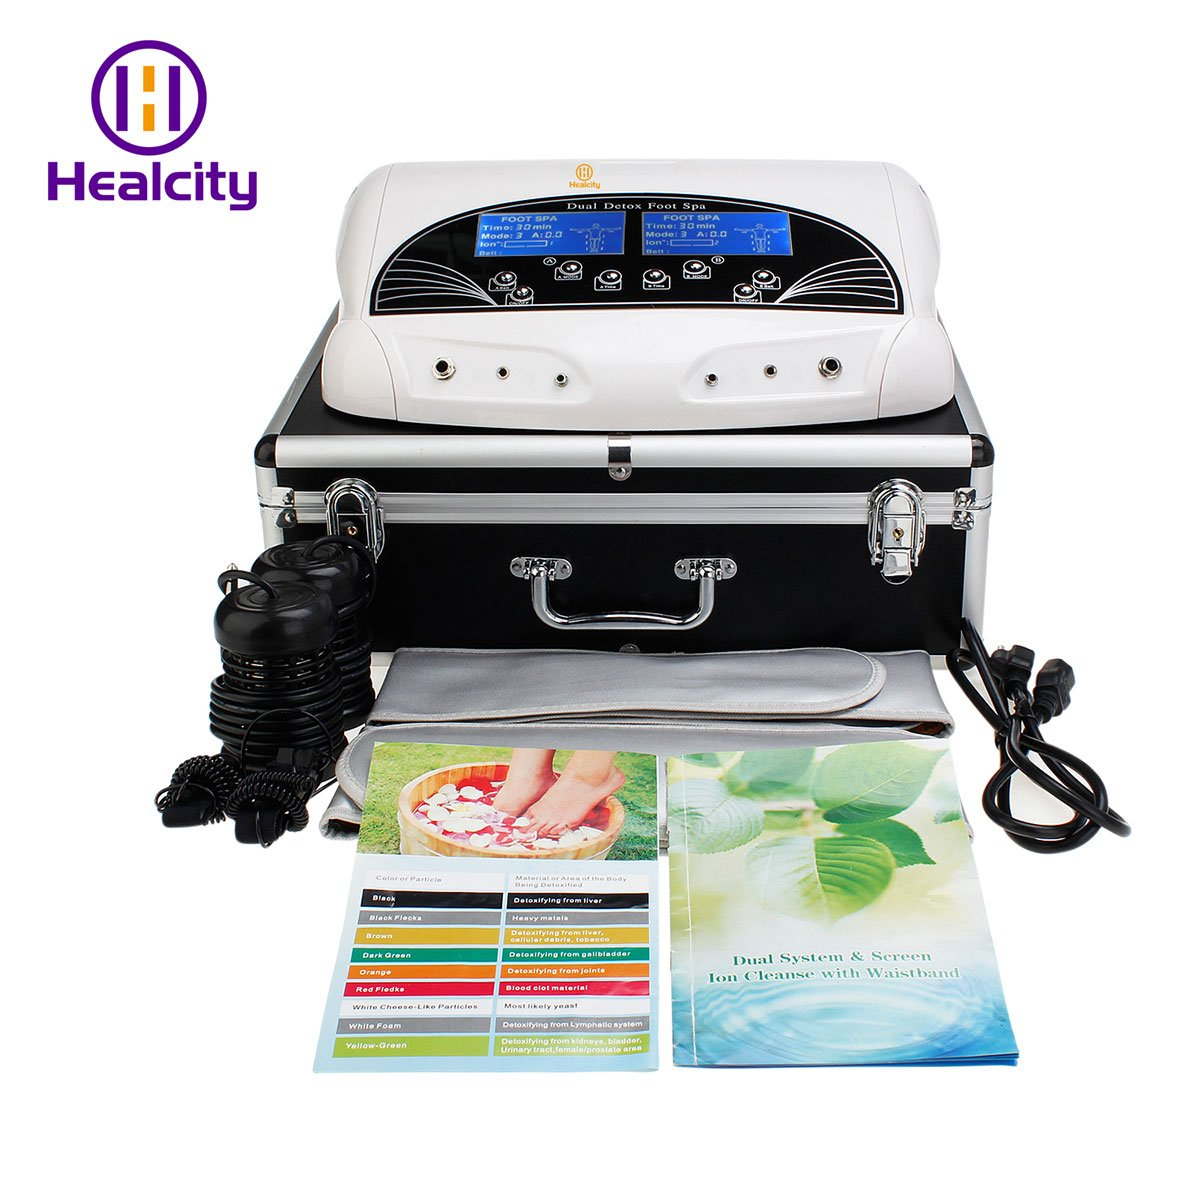 Healctiy Dual User Ionic Detox Foot Bath Spa Machine Cell Cleanse System with Far Belts & Colored LCD Thinkcenter F12-1